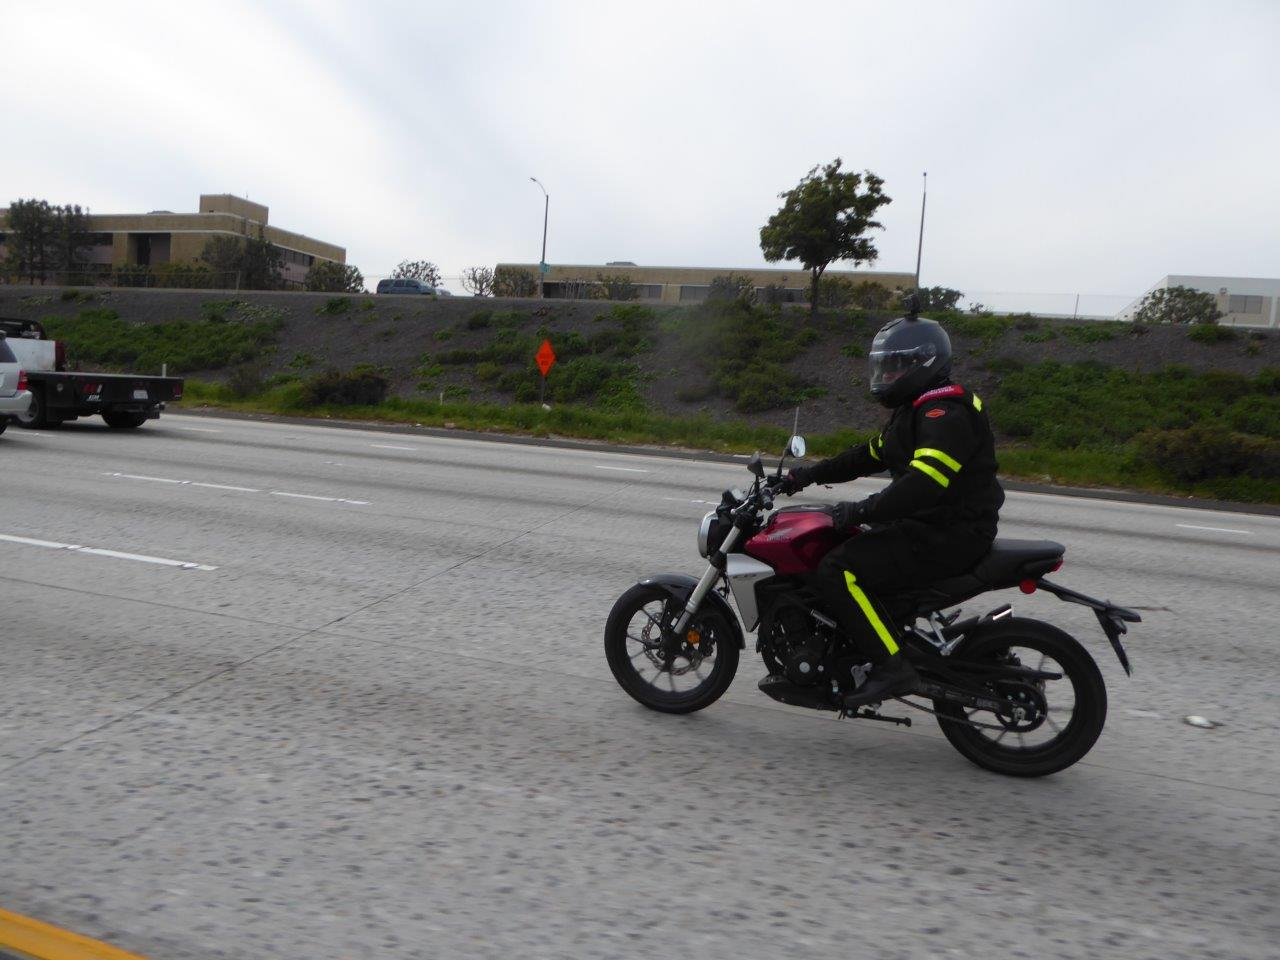 2019 Honda CB300R on the road.